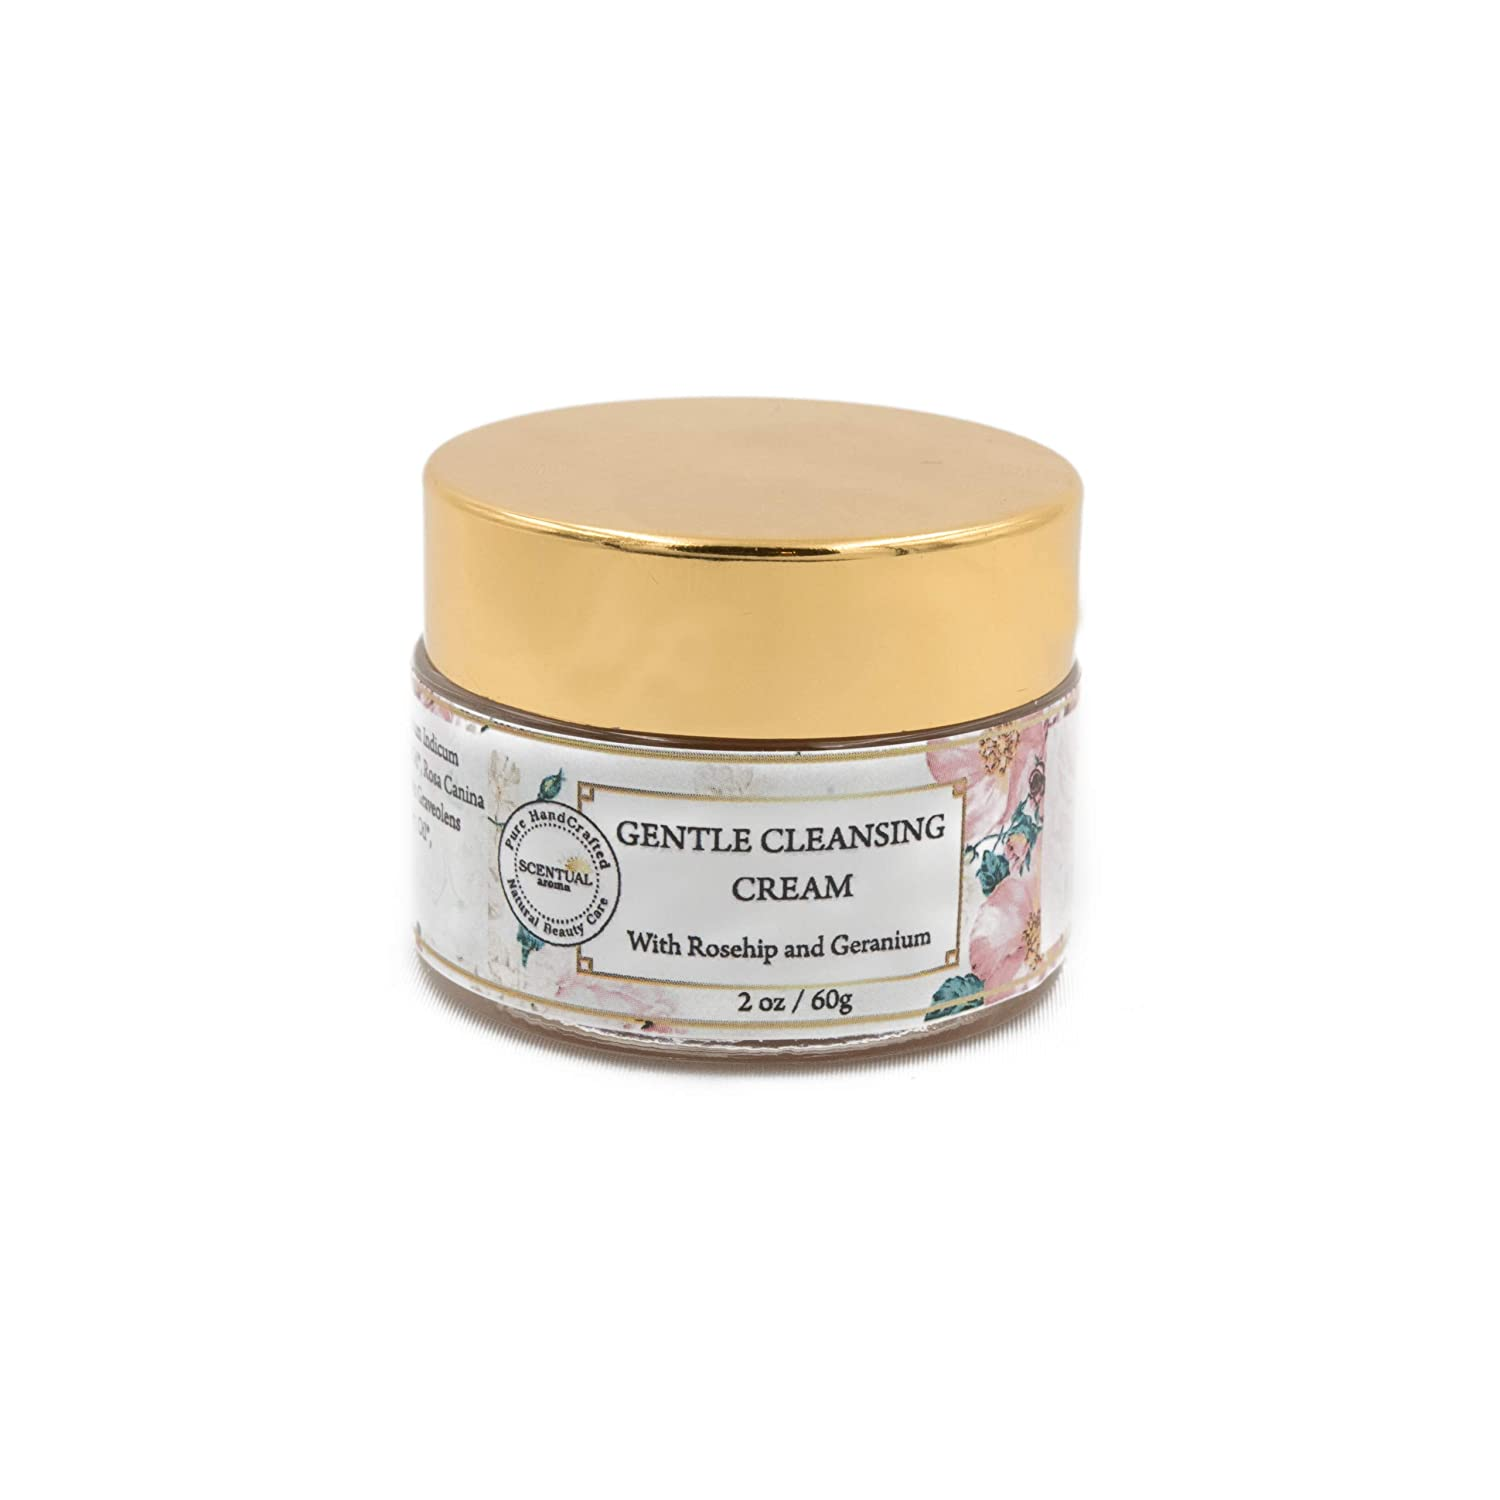 Scentual Aroma Natural Makeup Remover - Gentle Cleansing Cream